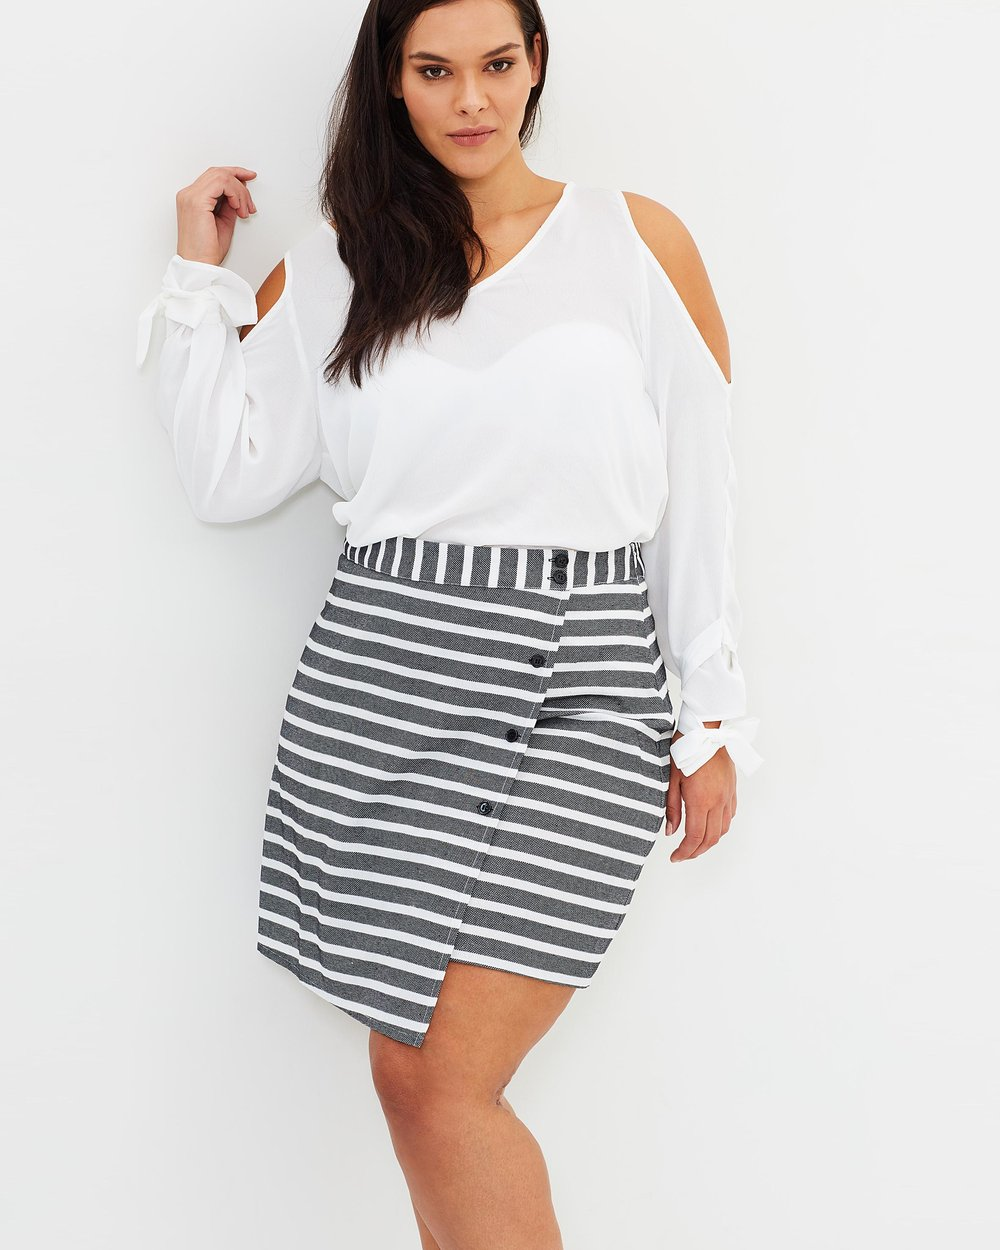 Minis are in. Get it from  The Iconic *Plus size friendly